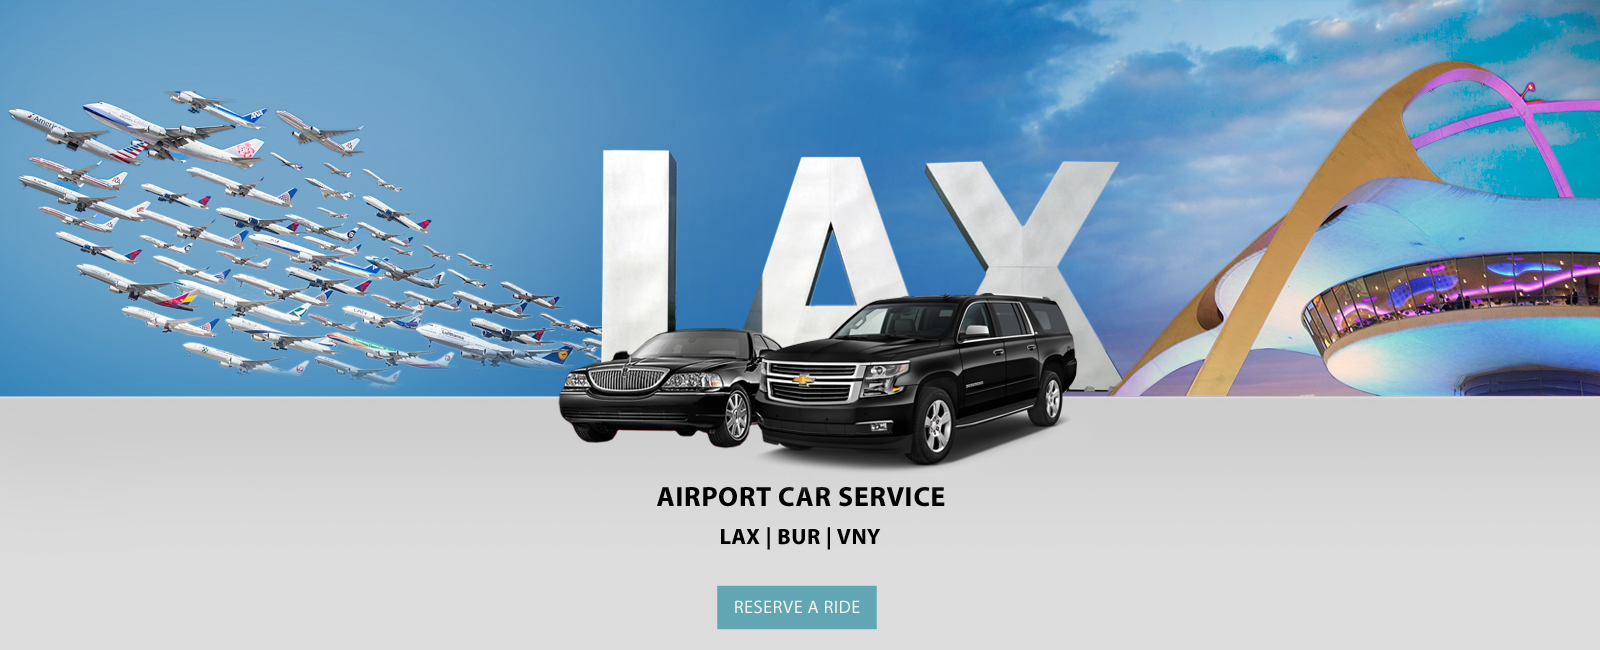 home-airport-car-service1